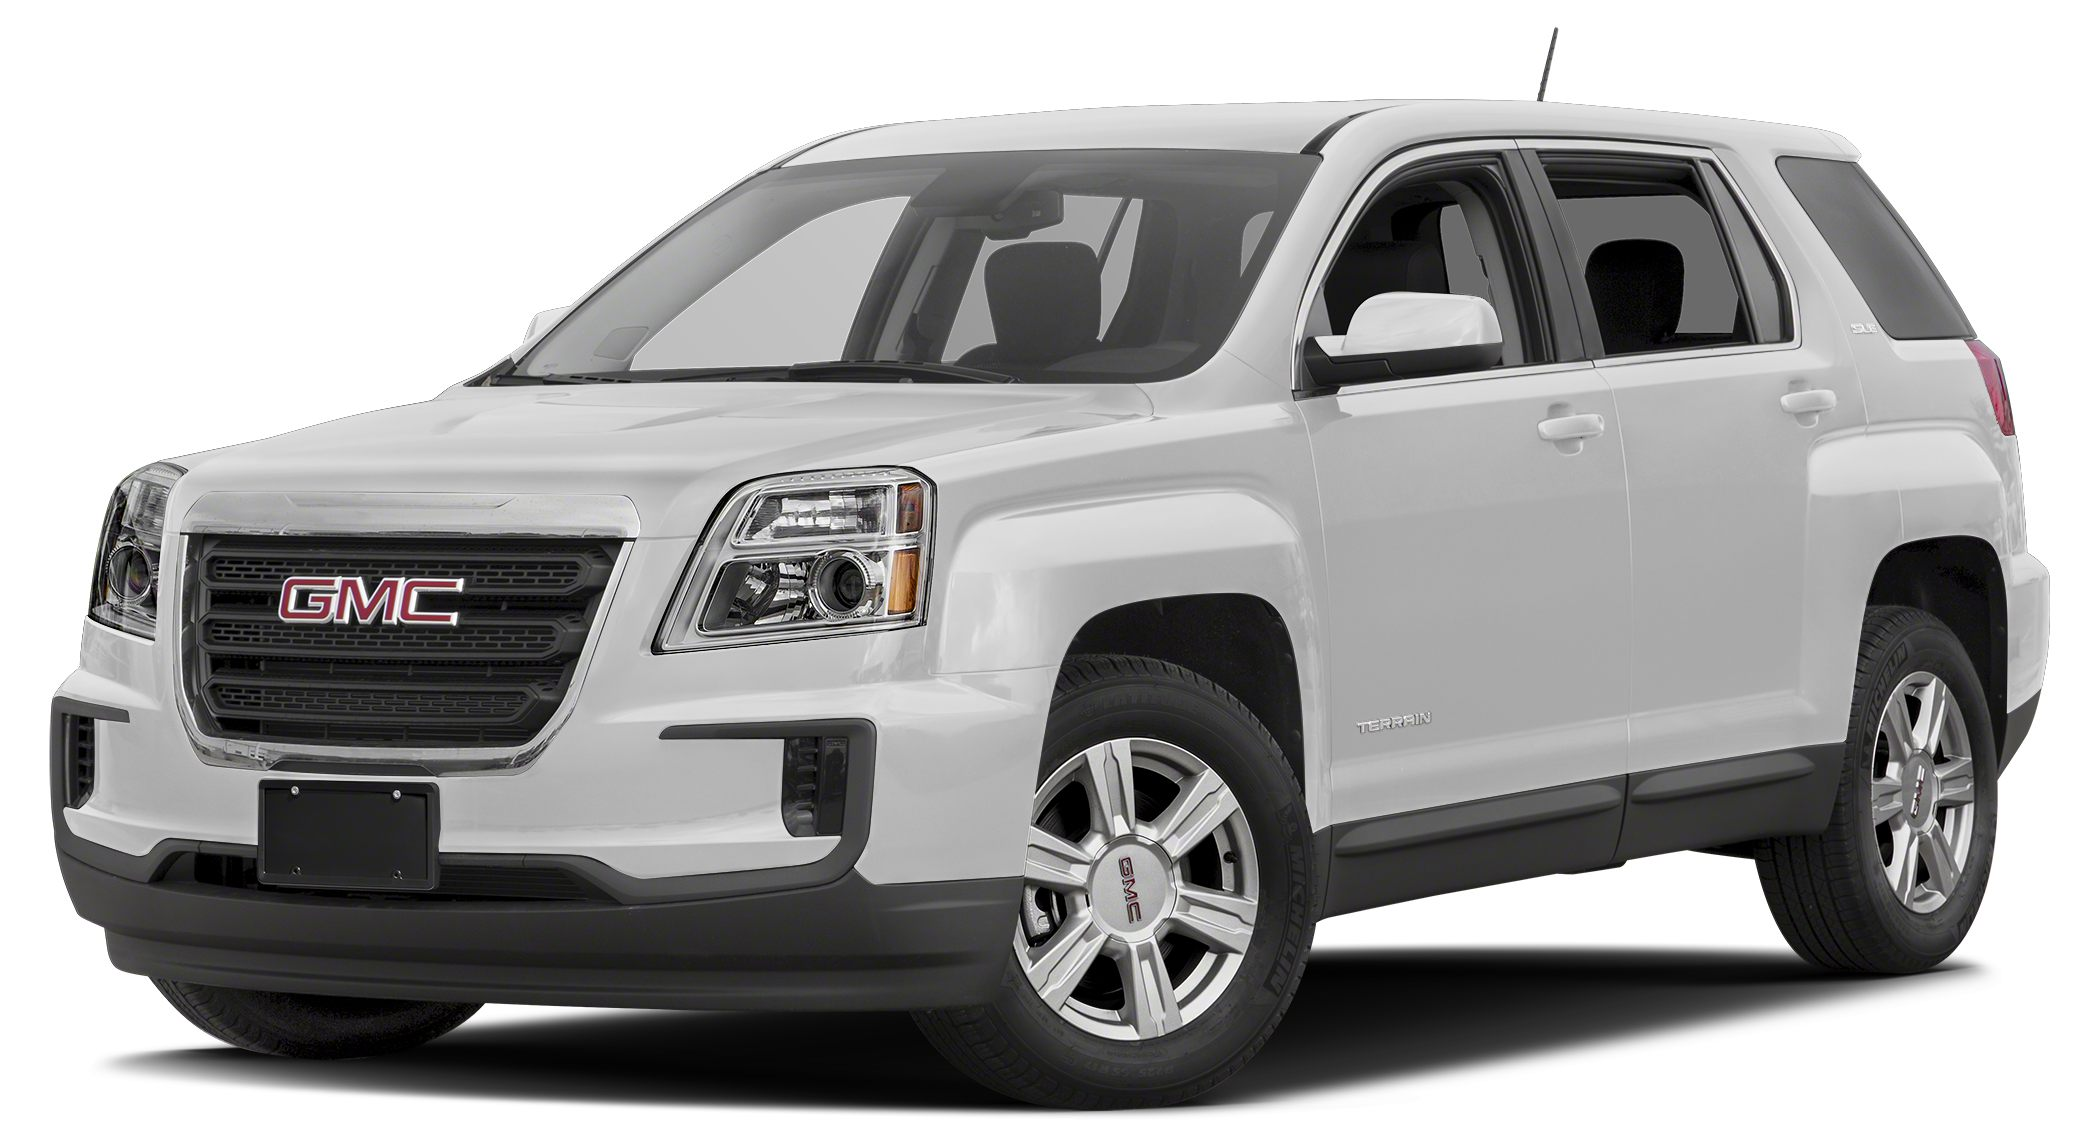 2016 GMC Terrain SLE-1 FUEL EFFICIENT 32 MPG Hwy22 MPG City Onboard Communications System Back-